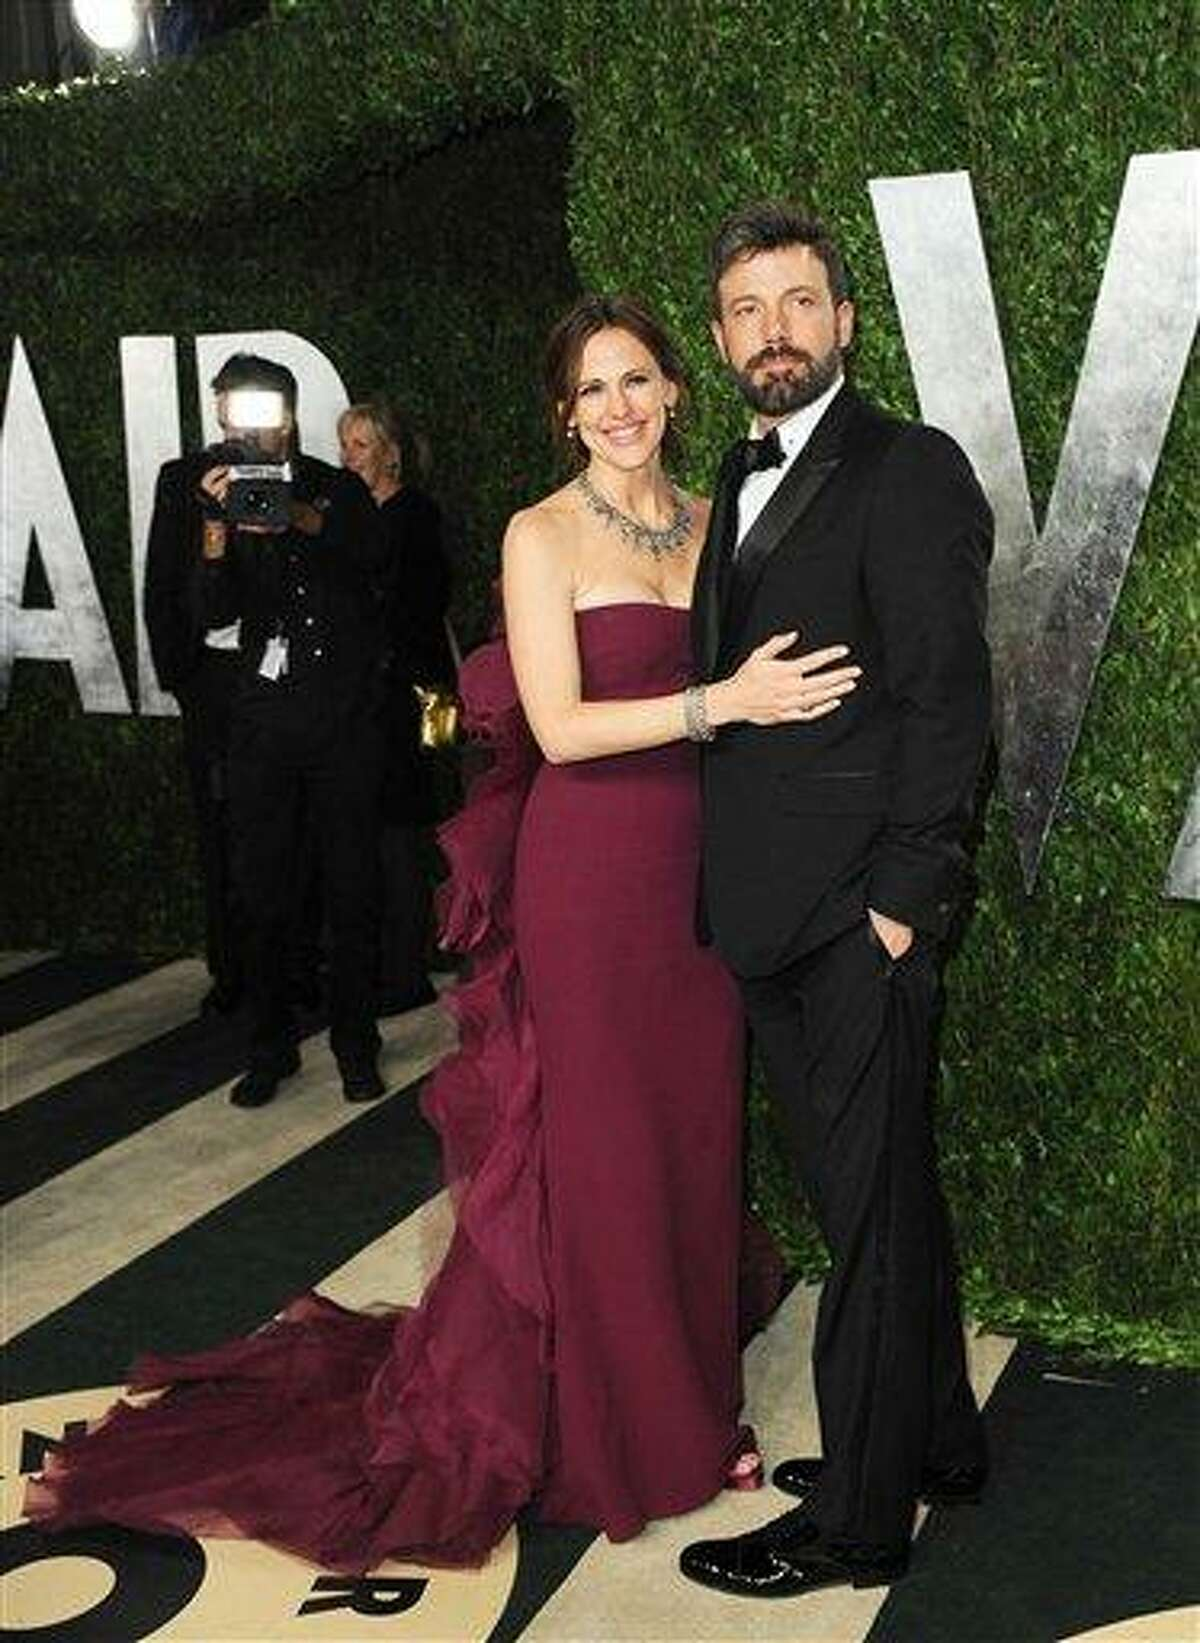 Actress Jennifer Garner, left, and director Ben Affleck arrive at the 2013 Vanity Fair Oscar party on Sunday, Feb. 24 2013 at the Sunset Plaza Hotel in West Hollywood, Calif. (Photo by Jordan Strauss/Invision/AP)